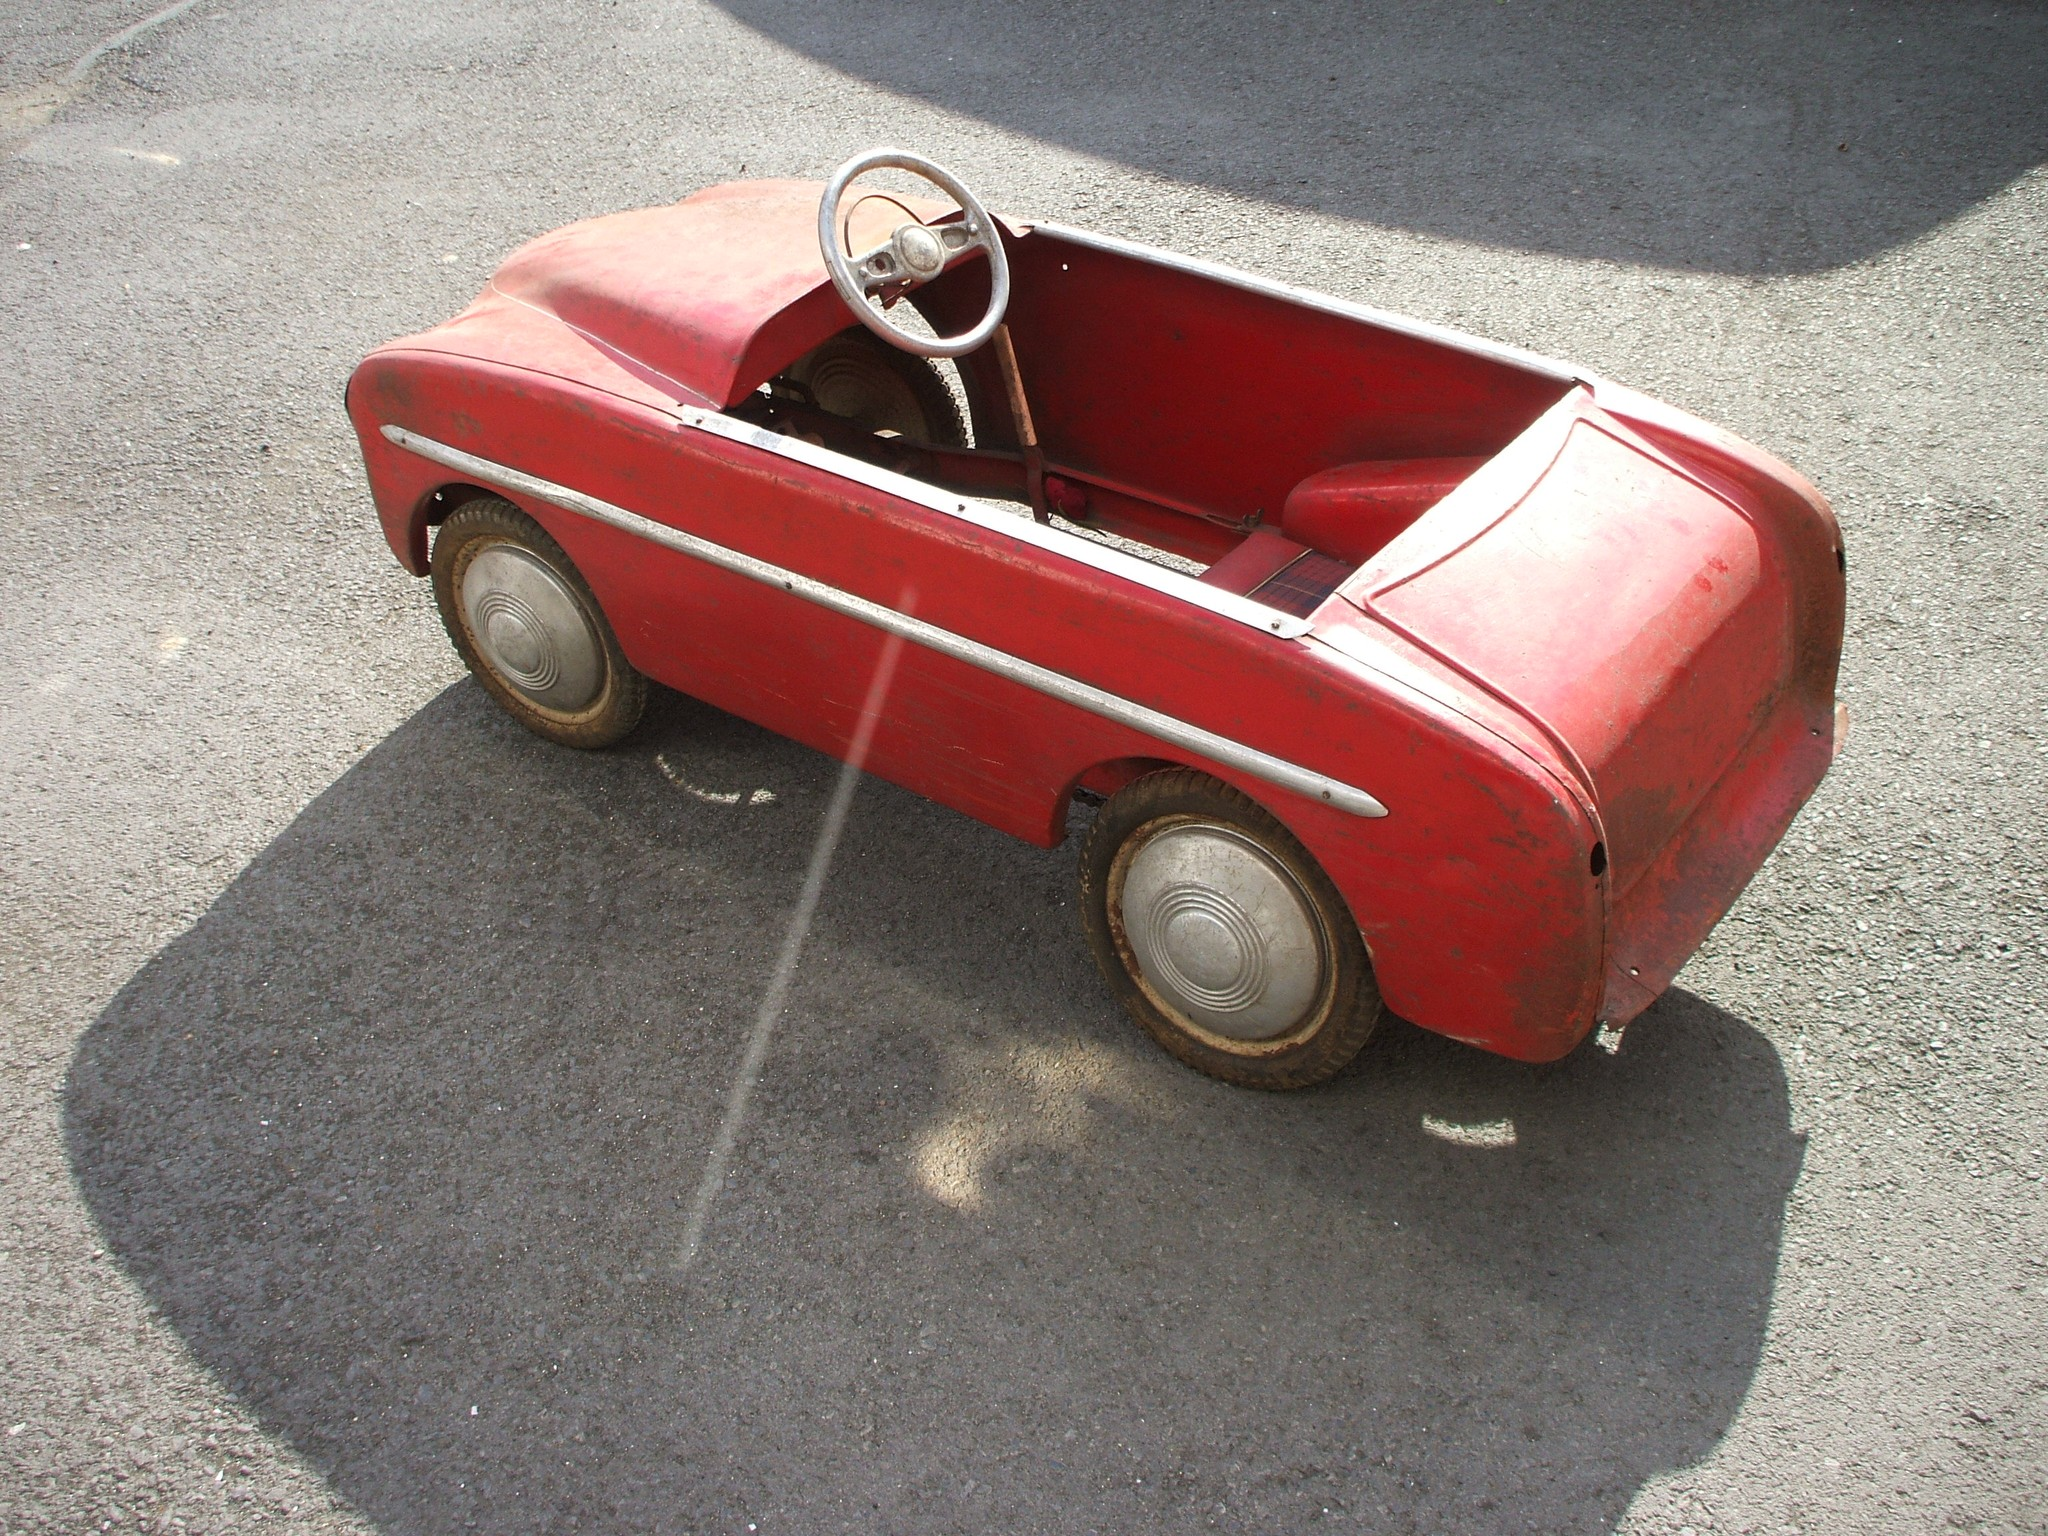 Voiture أ Anciens JouetsJeux Ancienne Pأ©dales Oy8wvN0mn